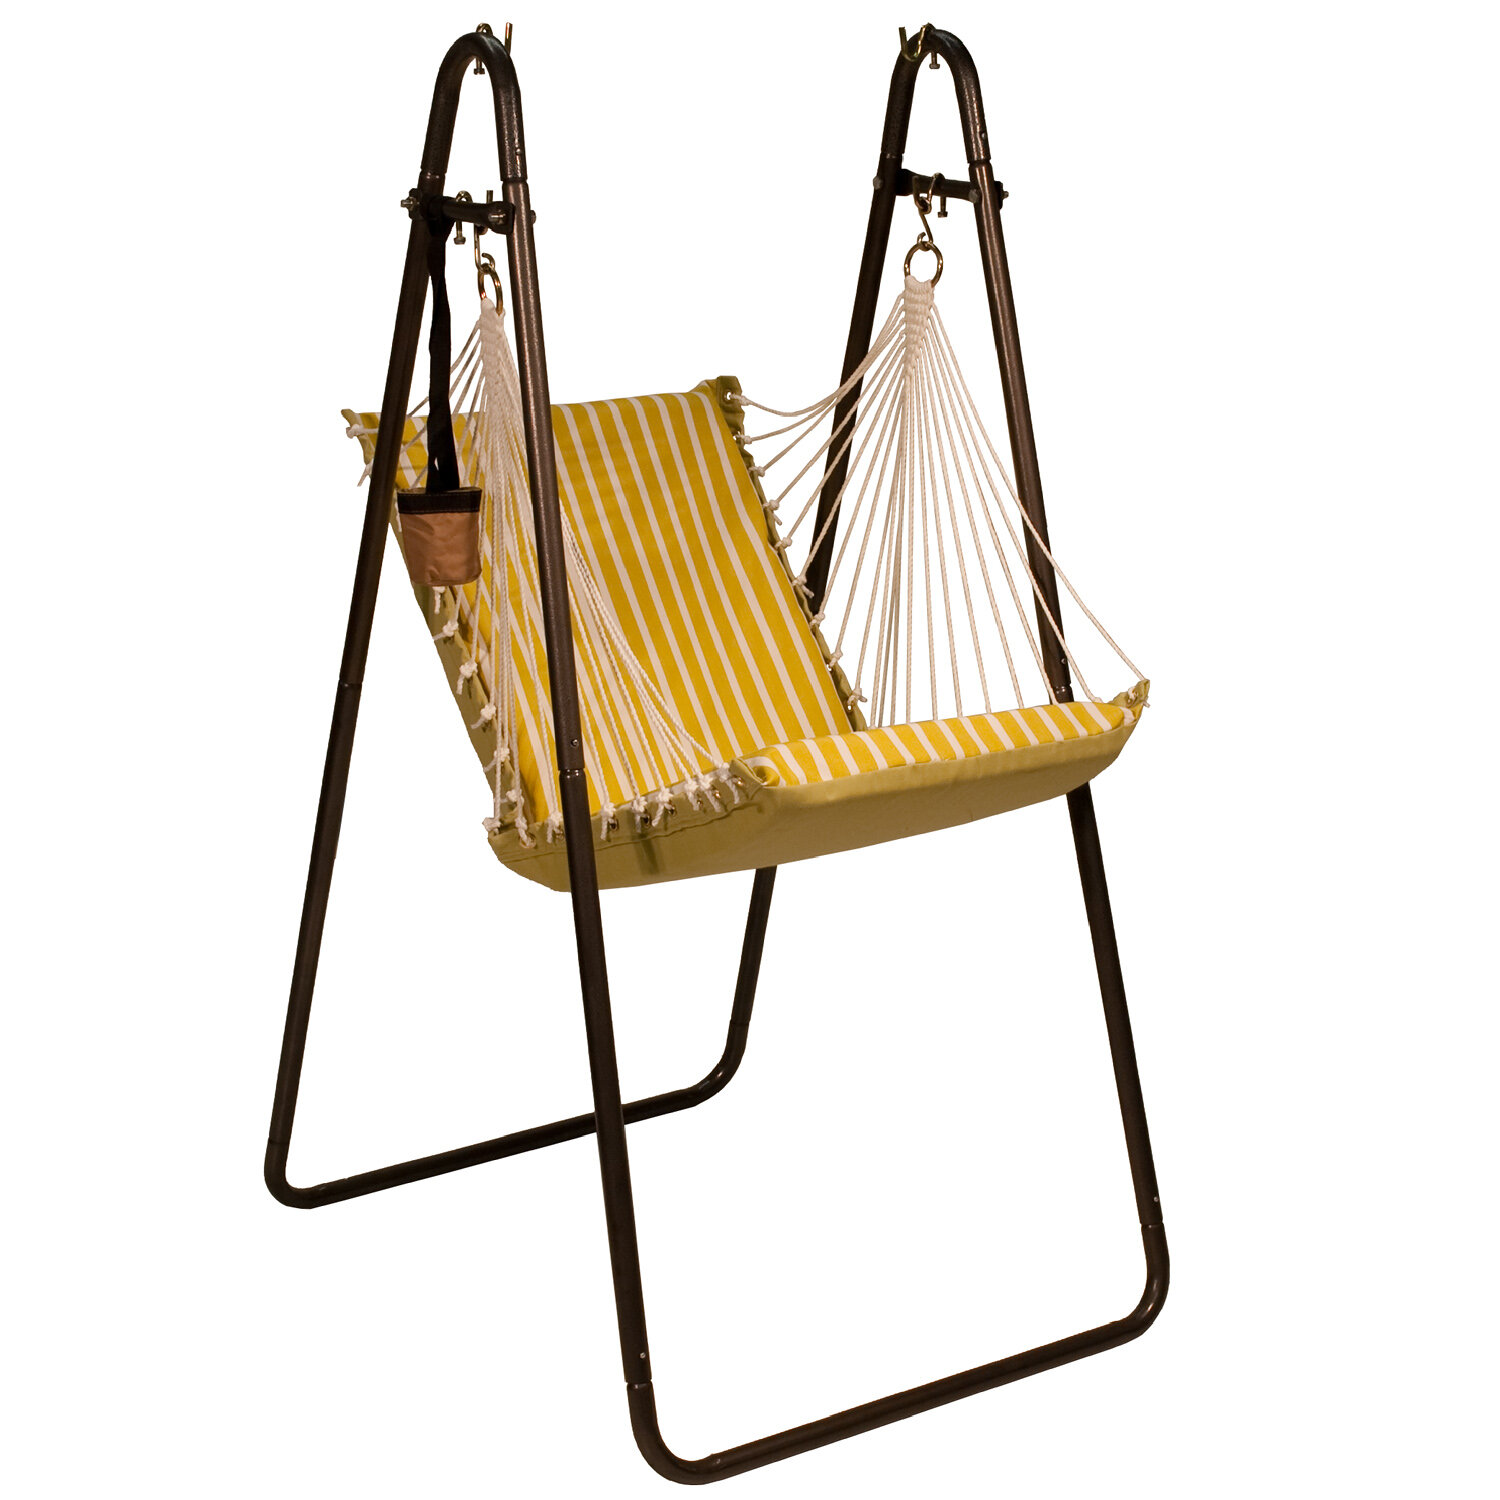 algoma    pany sunbrella and polyester chair hammock  algoma    pany sunbrella and polyester chair hammock with      rh   ebay